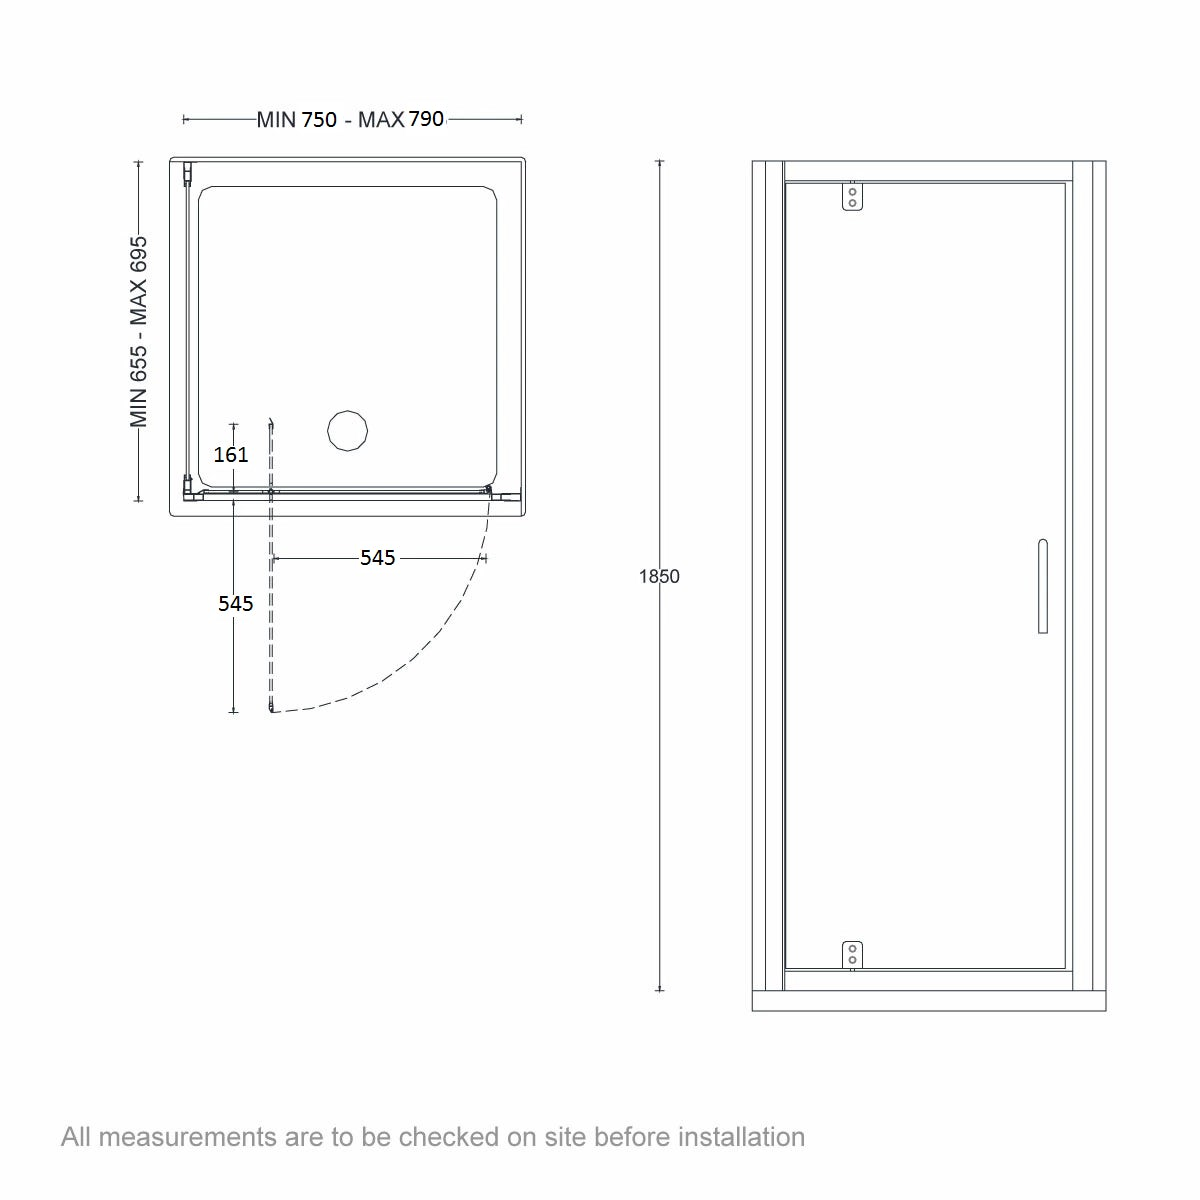 Dimensions for 800 x 700